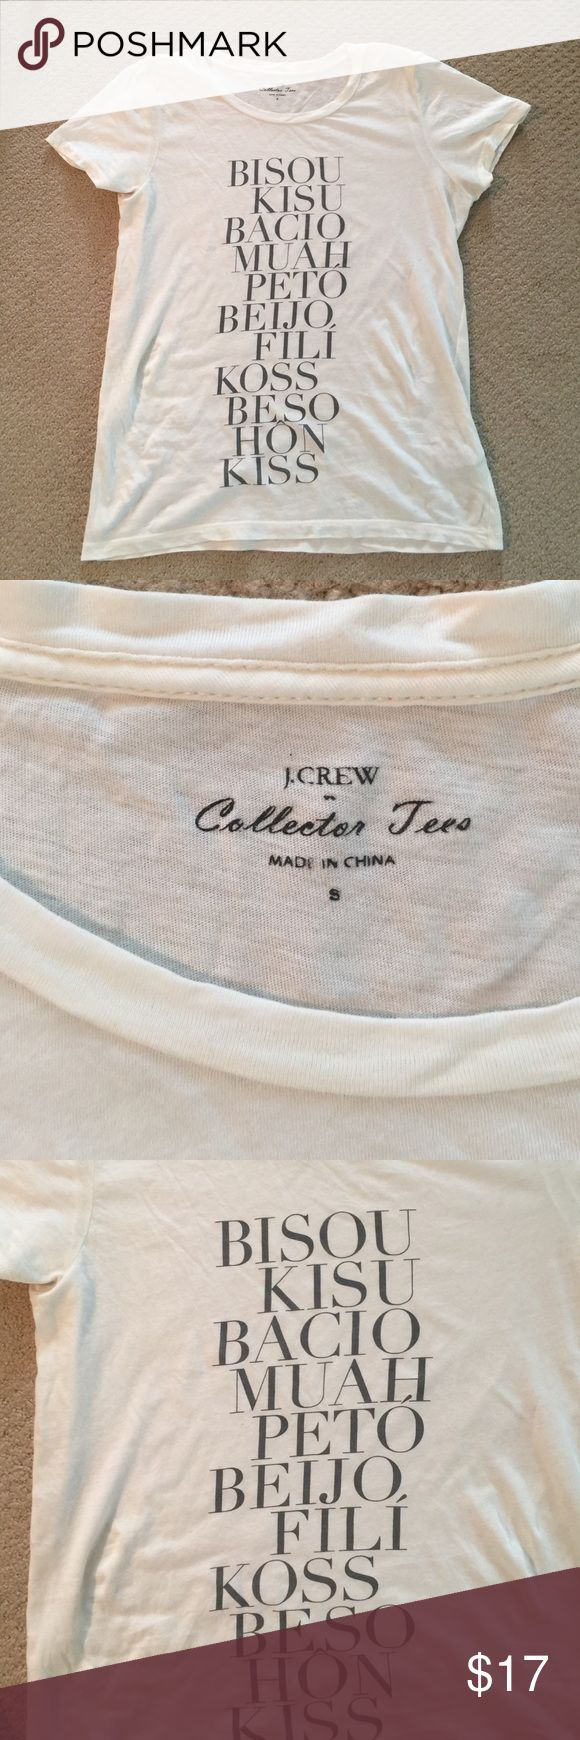 J. Crew Kiss T-Shirt size small Off white J. Crew kiss kiss t-shirt. Size small. Lightweight t in very good condition. J. Crew Tops Tees - Short Sleeve